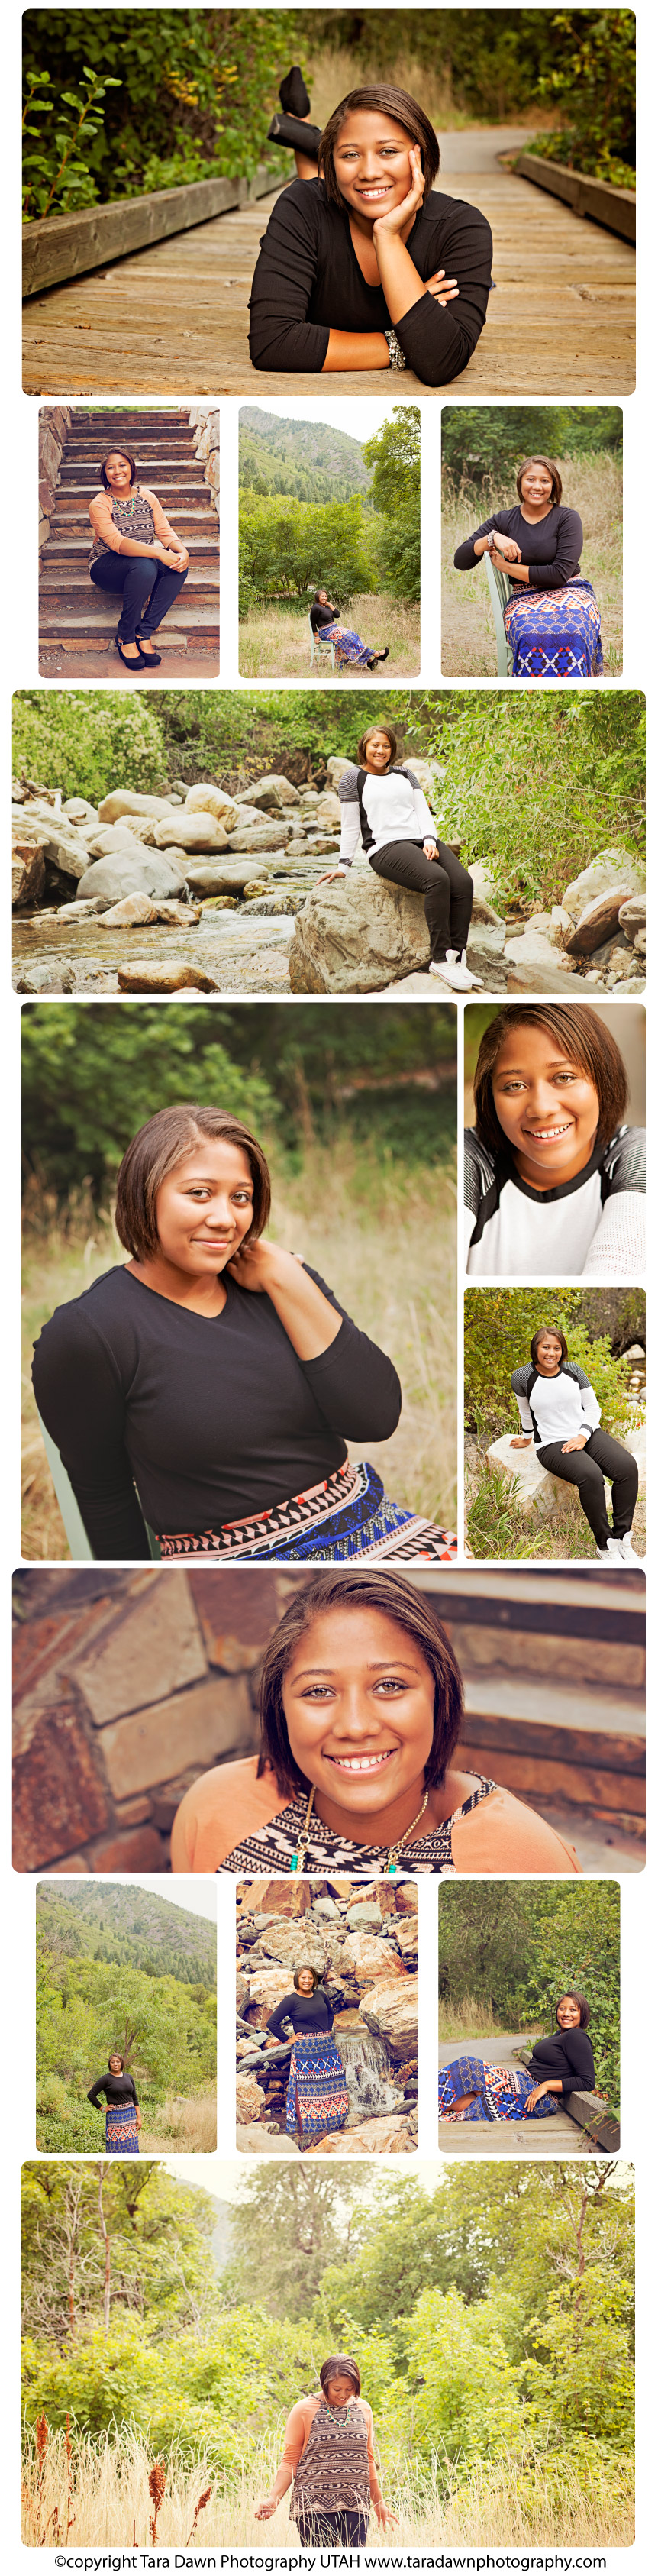 seniorpicsphotography tara dawn photography colorado